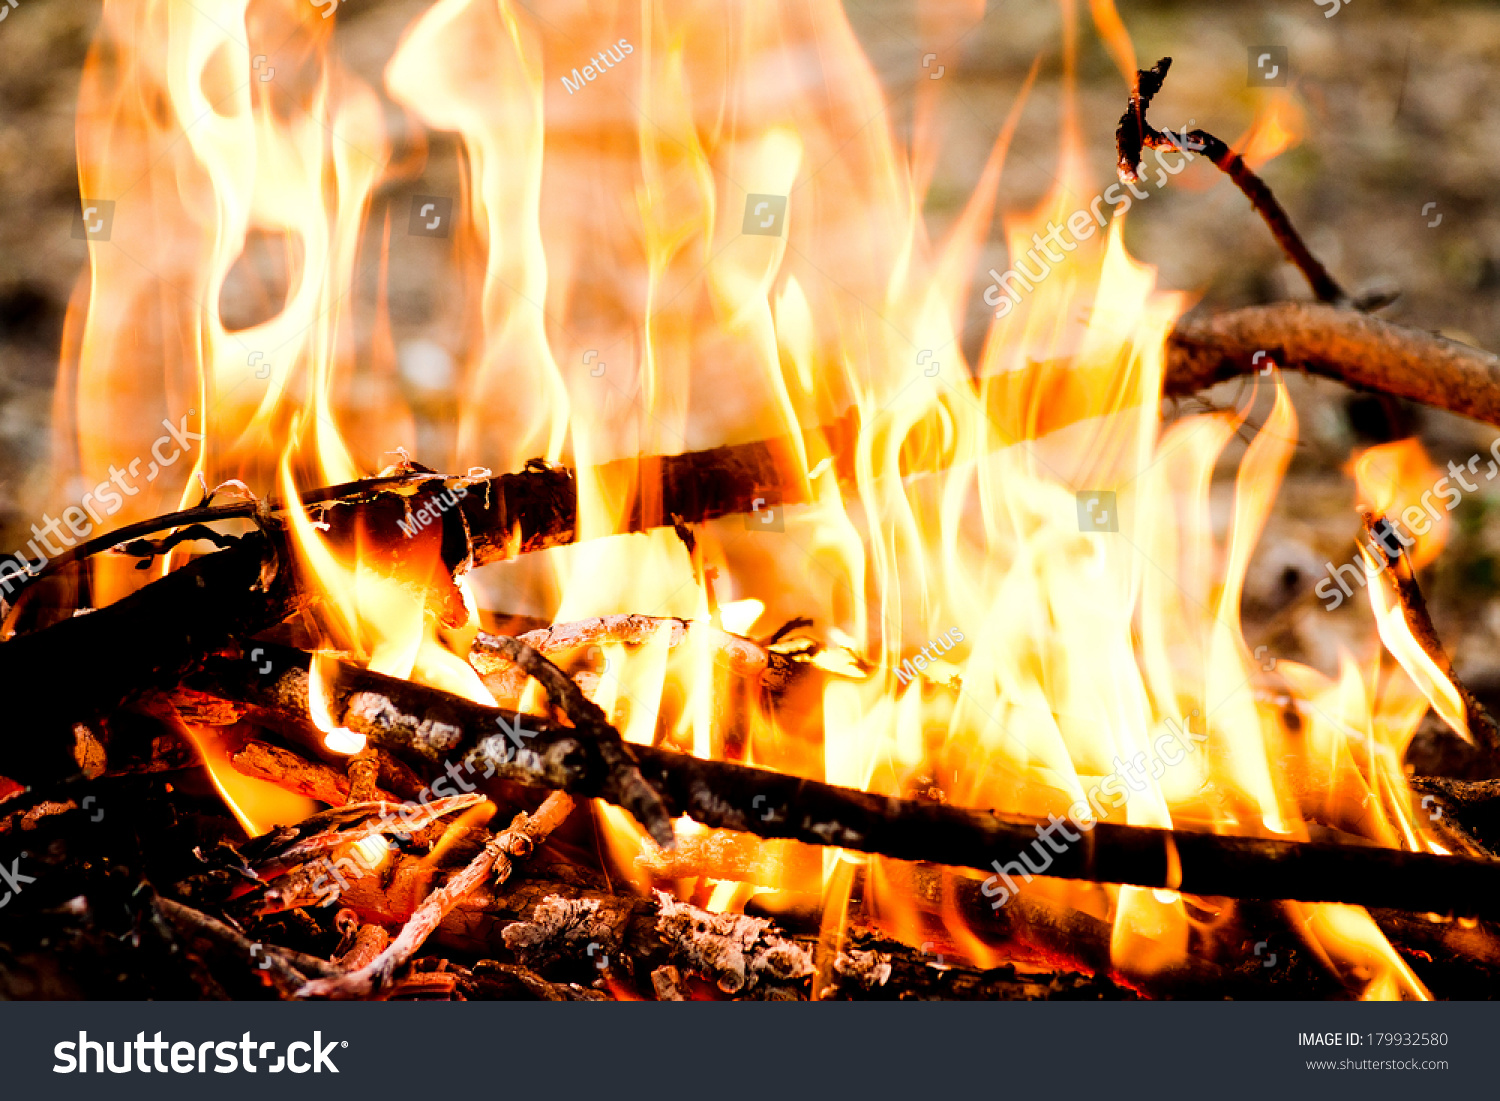 stock-photo-fire-outdoors-image-17993258